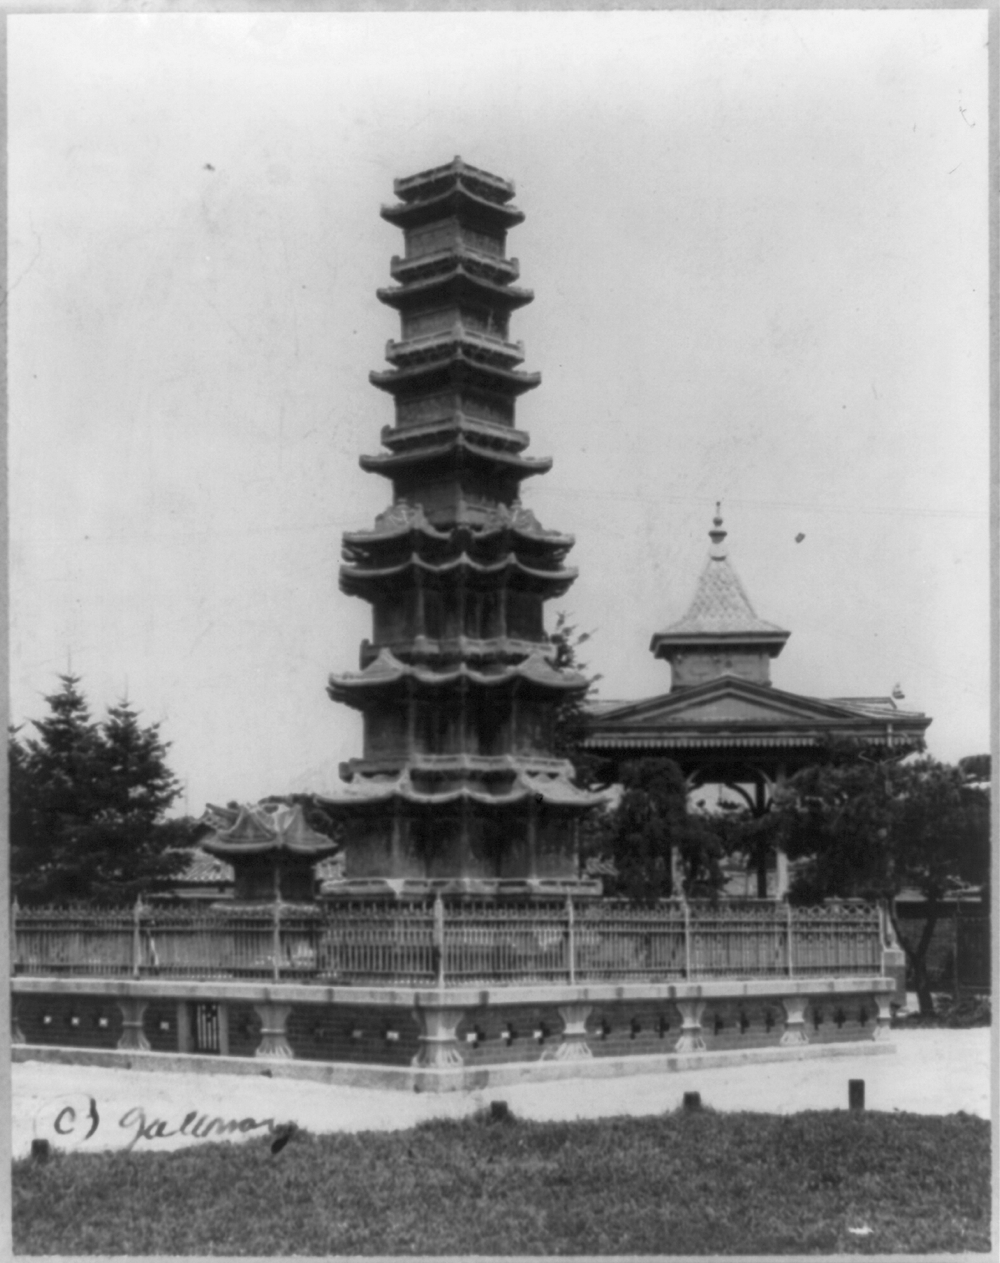 Marble pagoda, which is a Buddhist monument